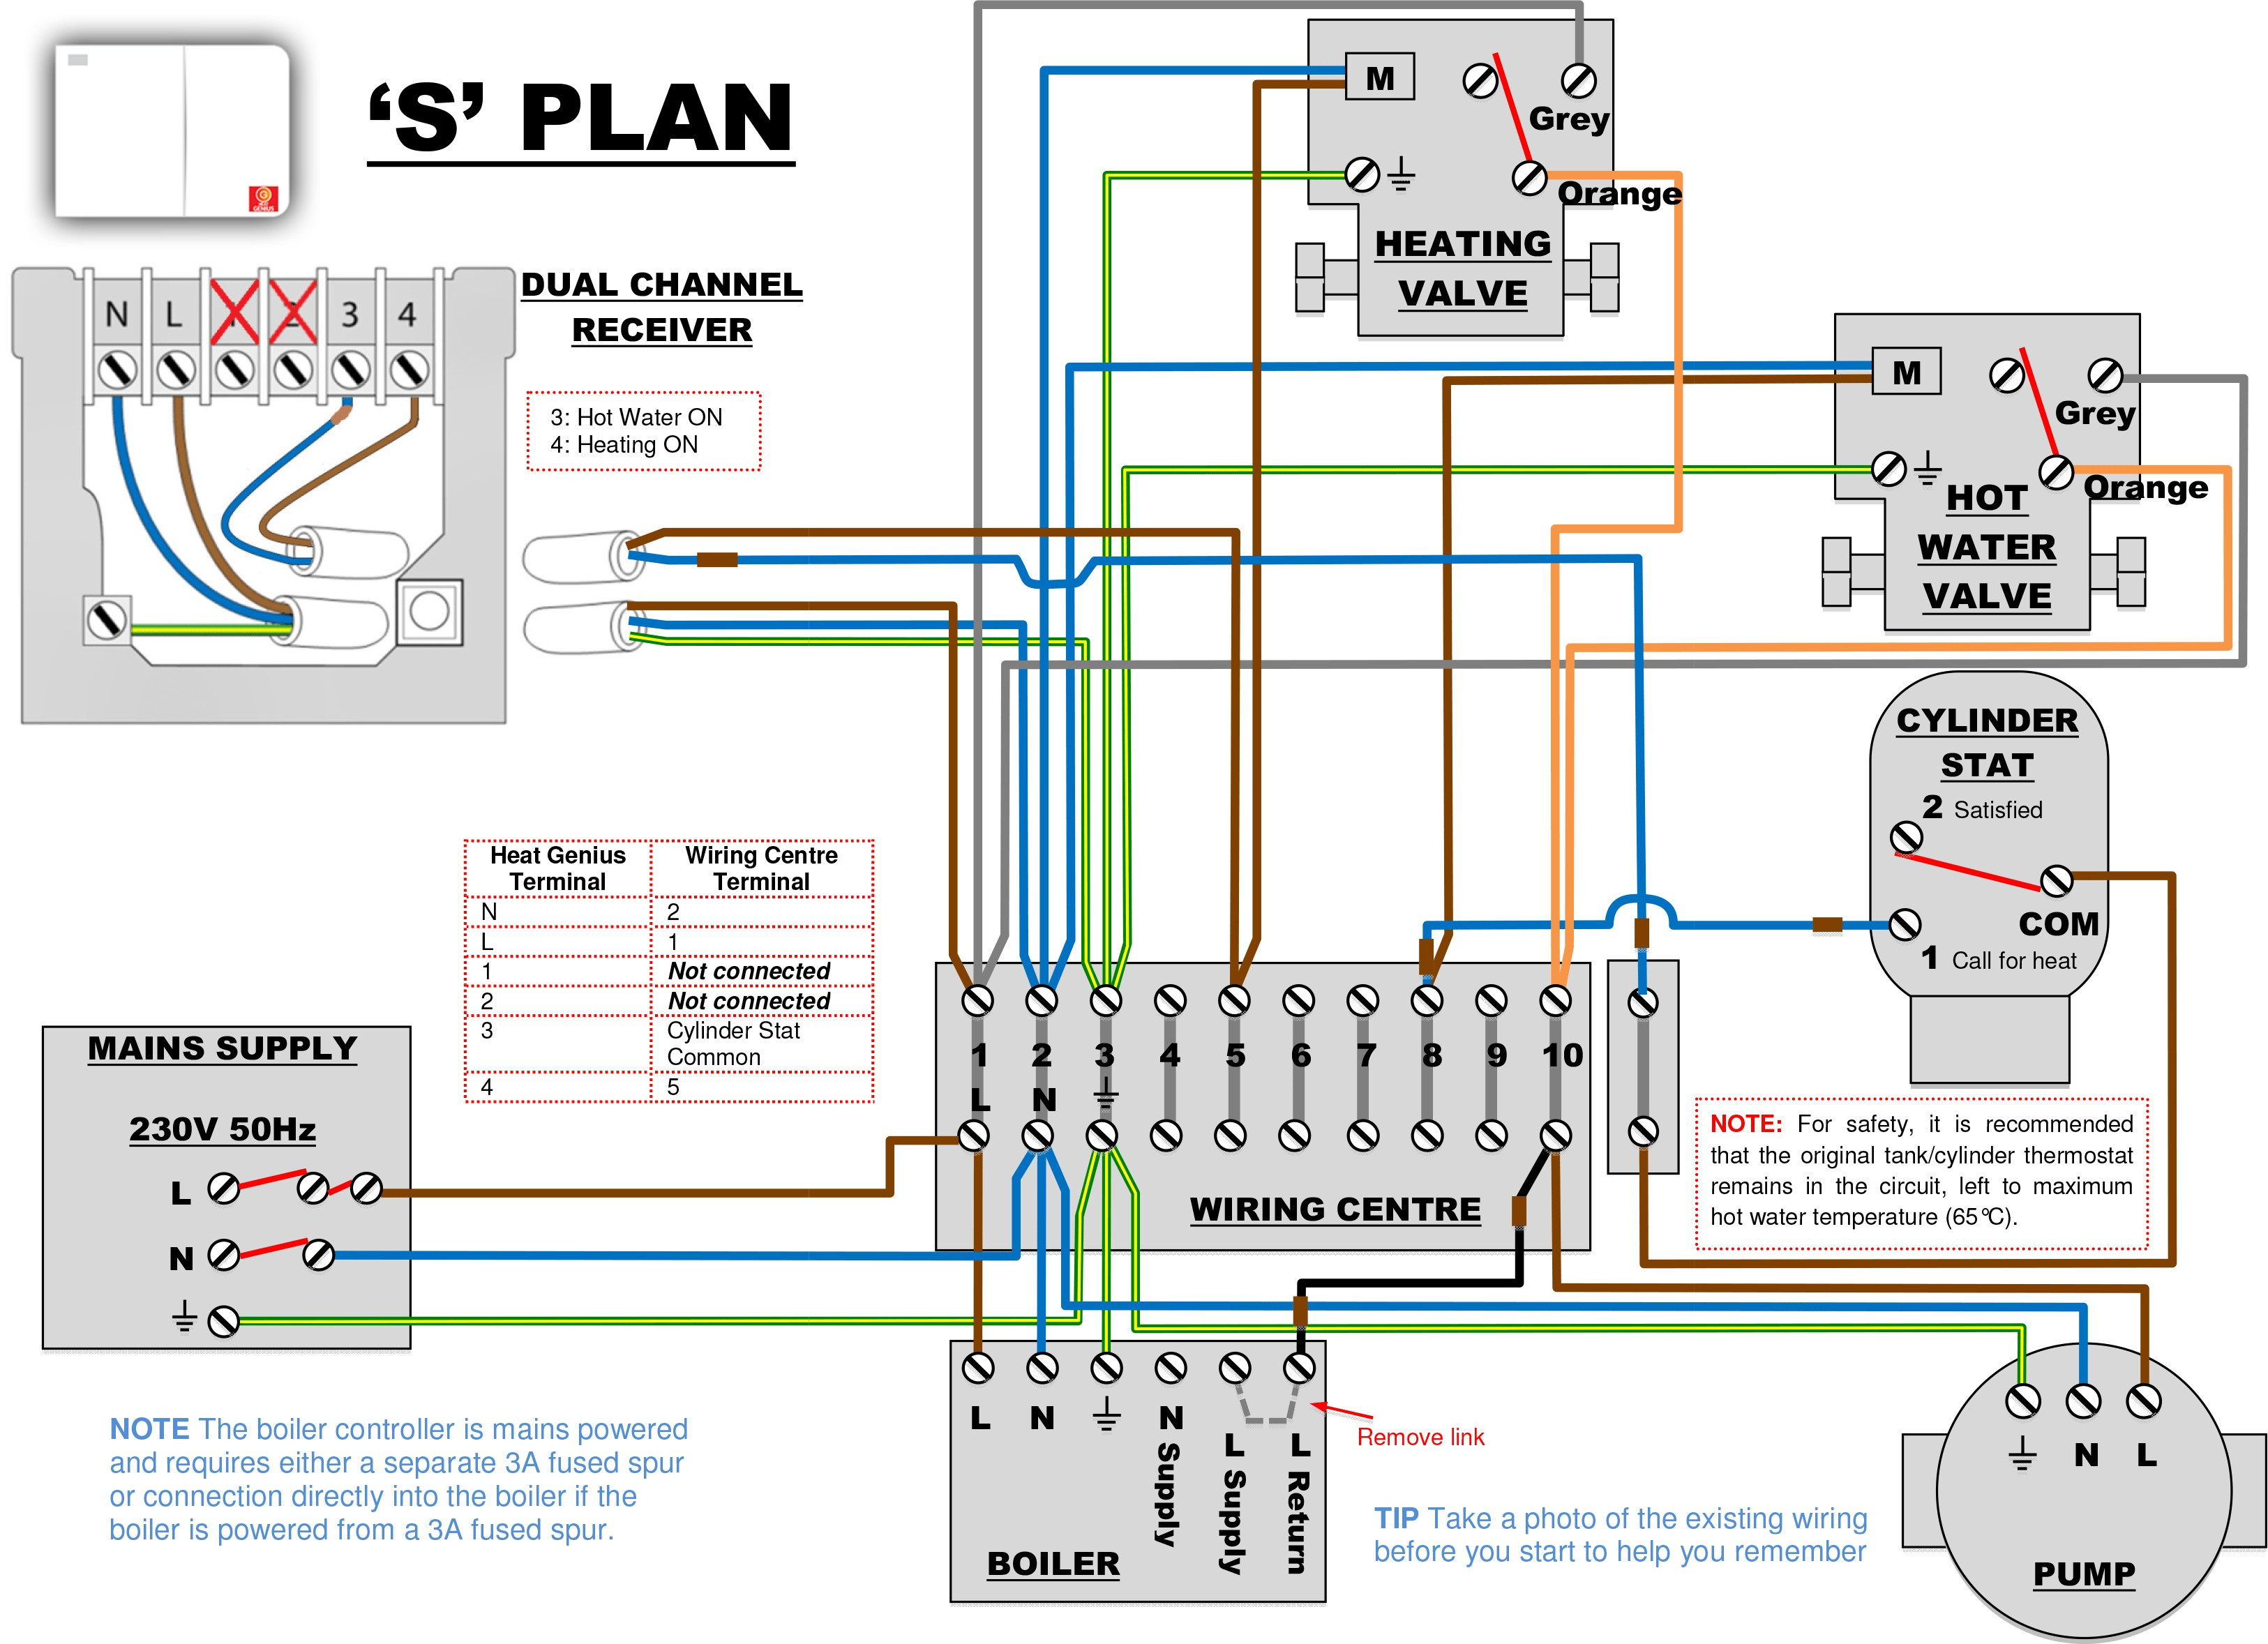 Nest T Stat Wiring Diagram | Wiring Diagram - Digital Thermostat Wiring Diagram Nest